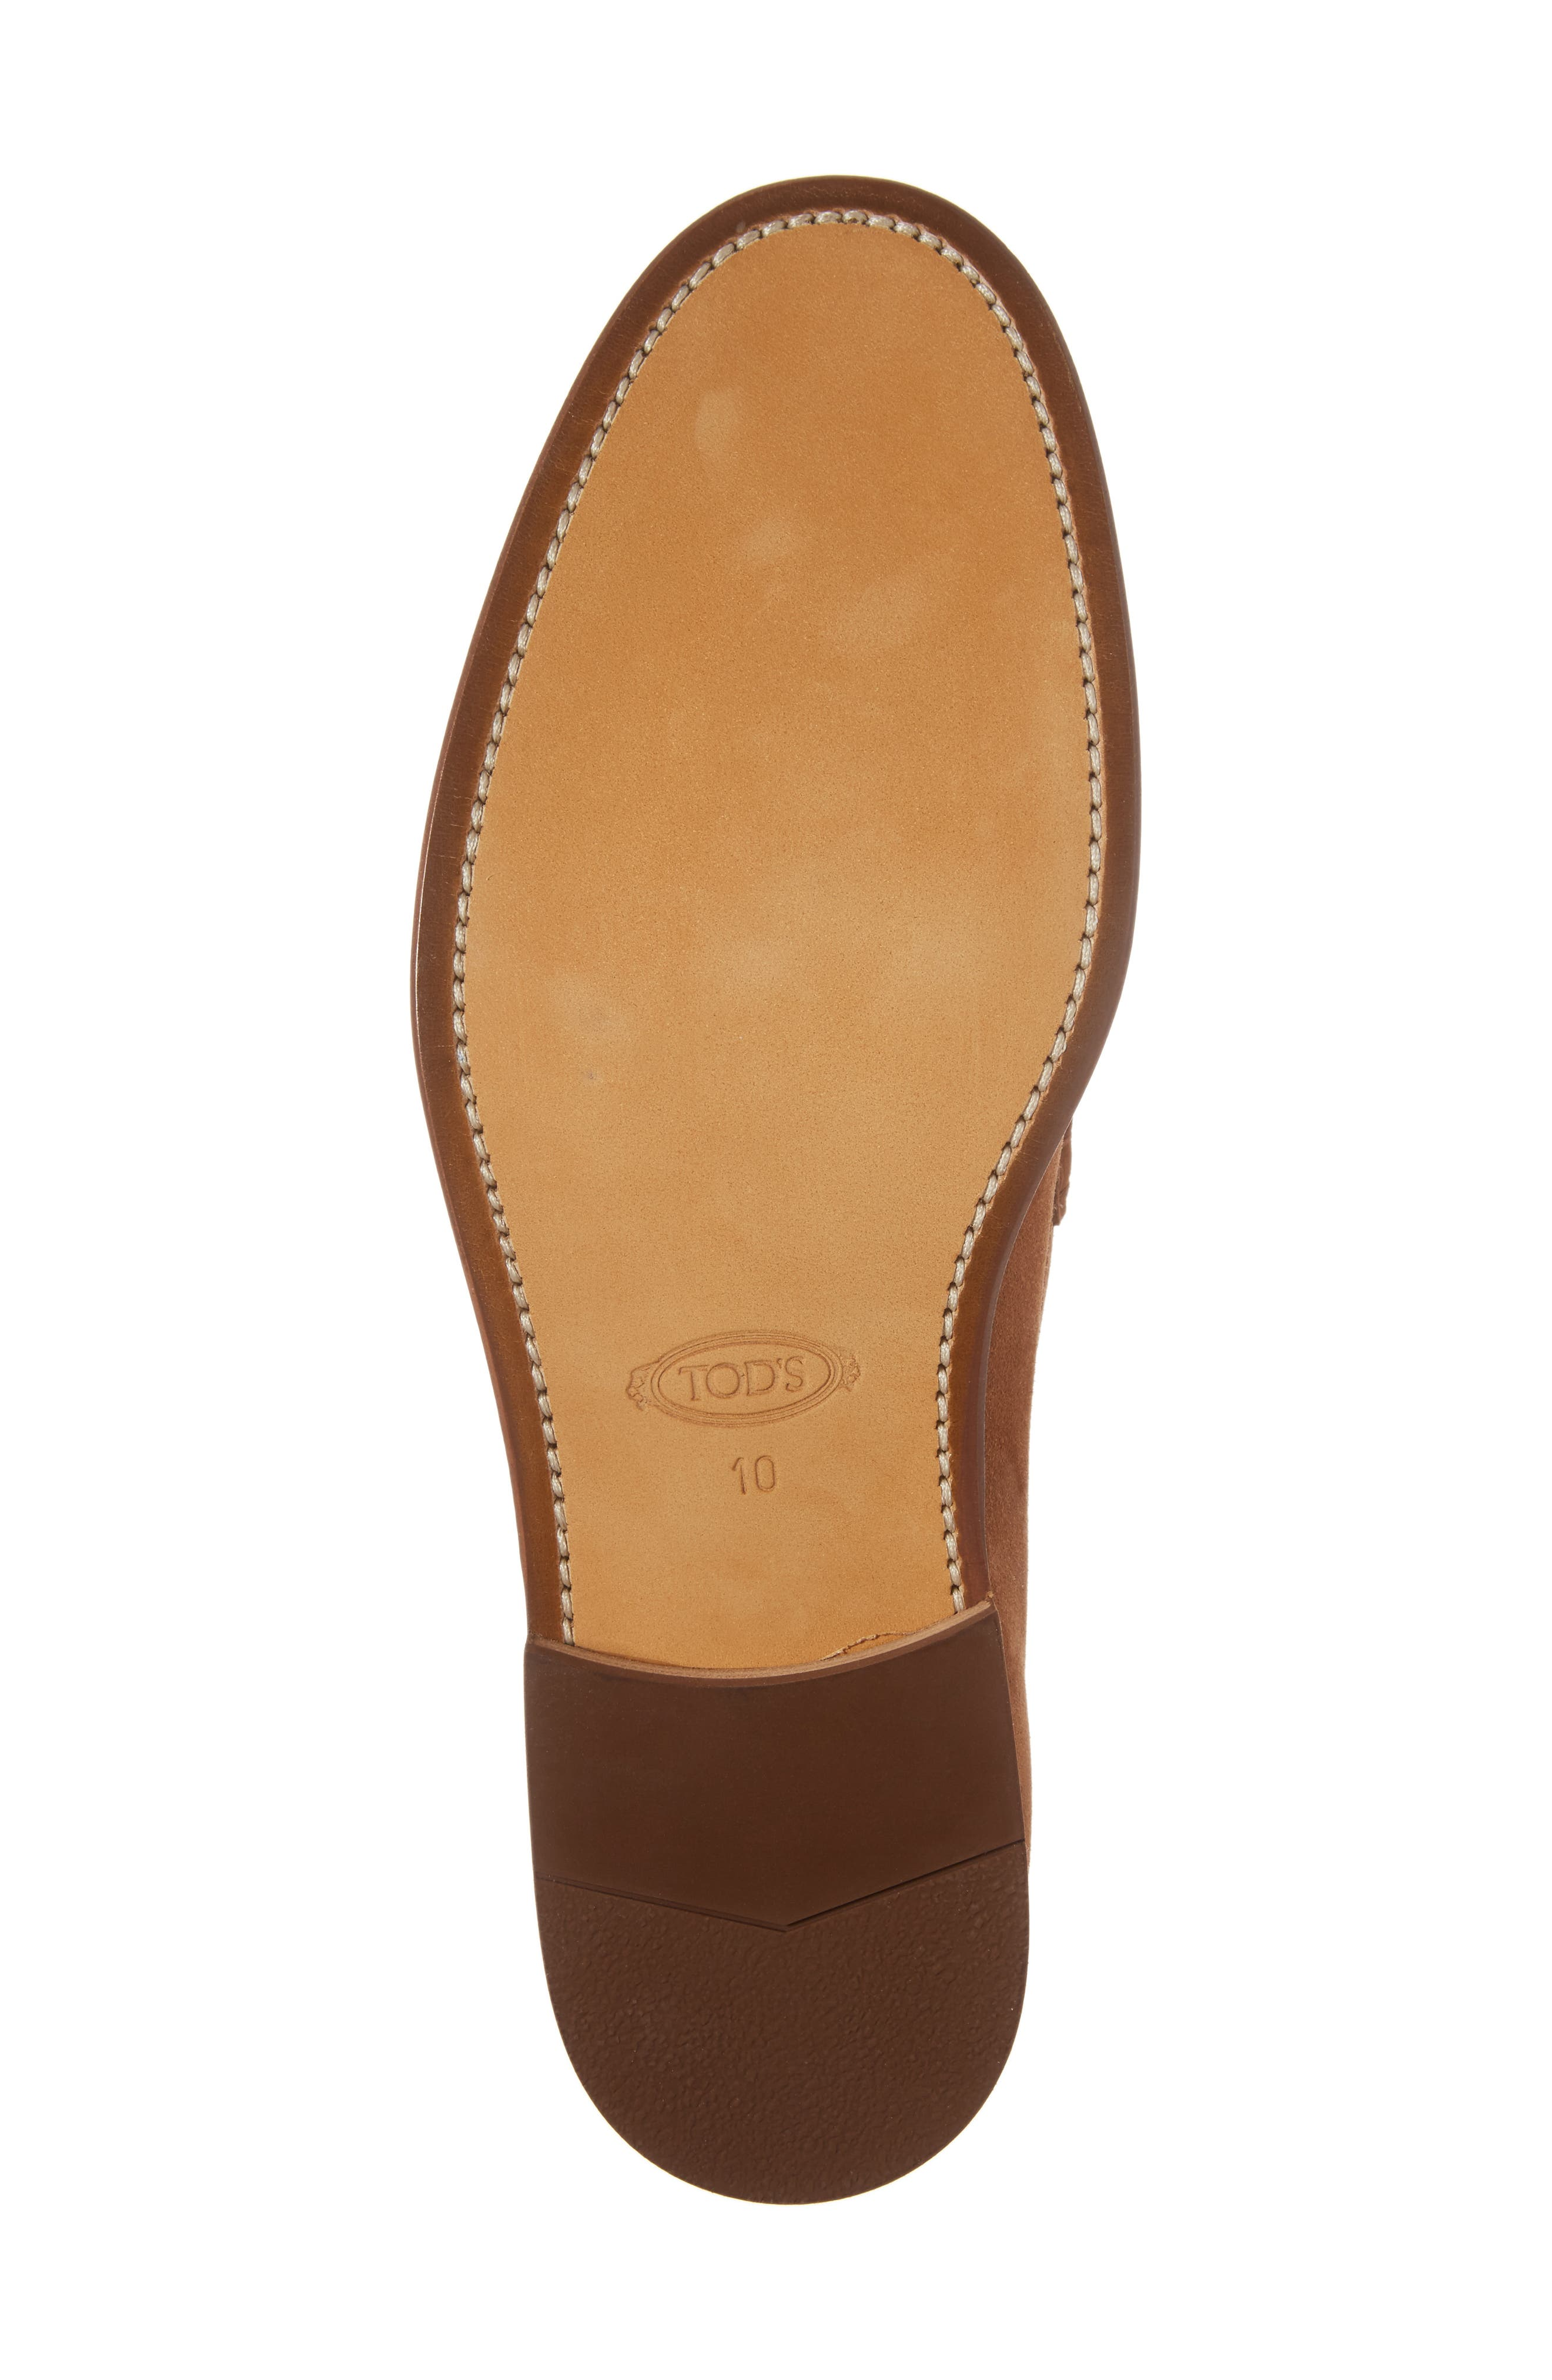 Suede Penny Loafer,                             Alternate thumbnail 6, color,                             215